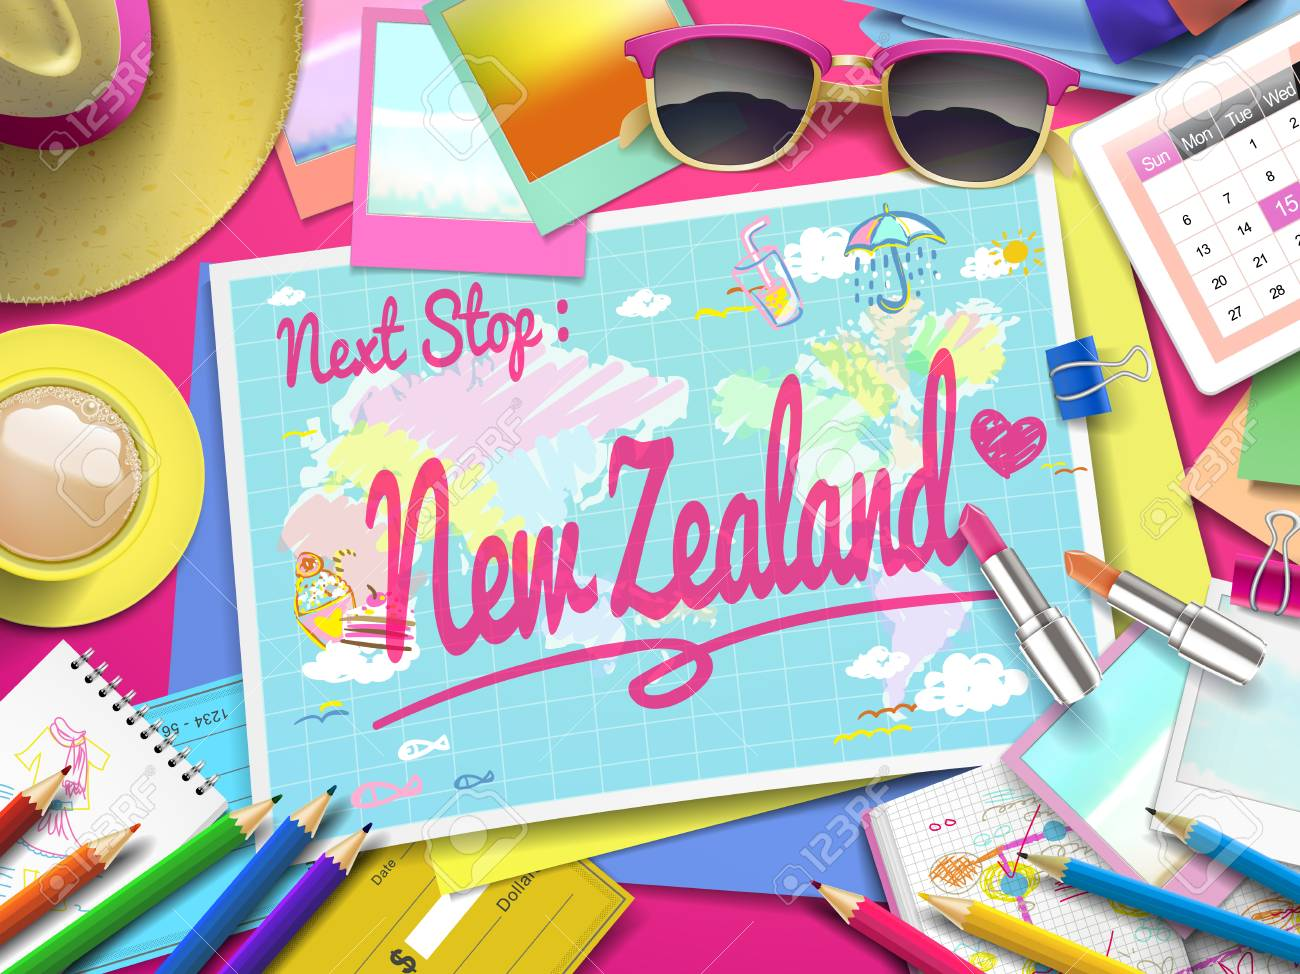 Travel Map New Zealand.New Zealand On Map Top View Of Colorful Travel Essentials On